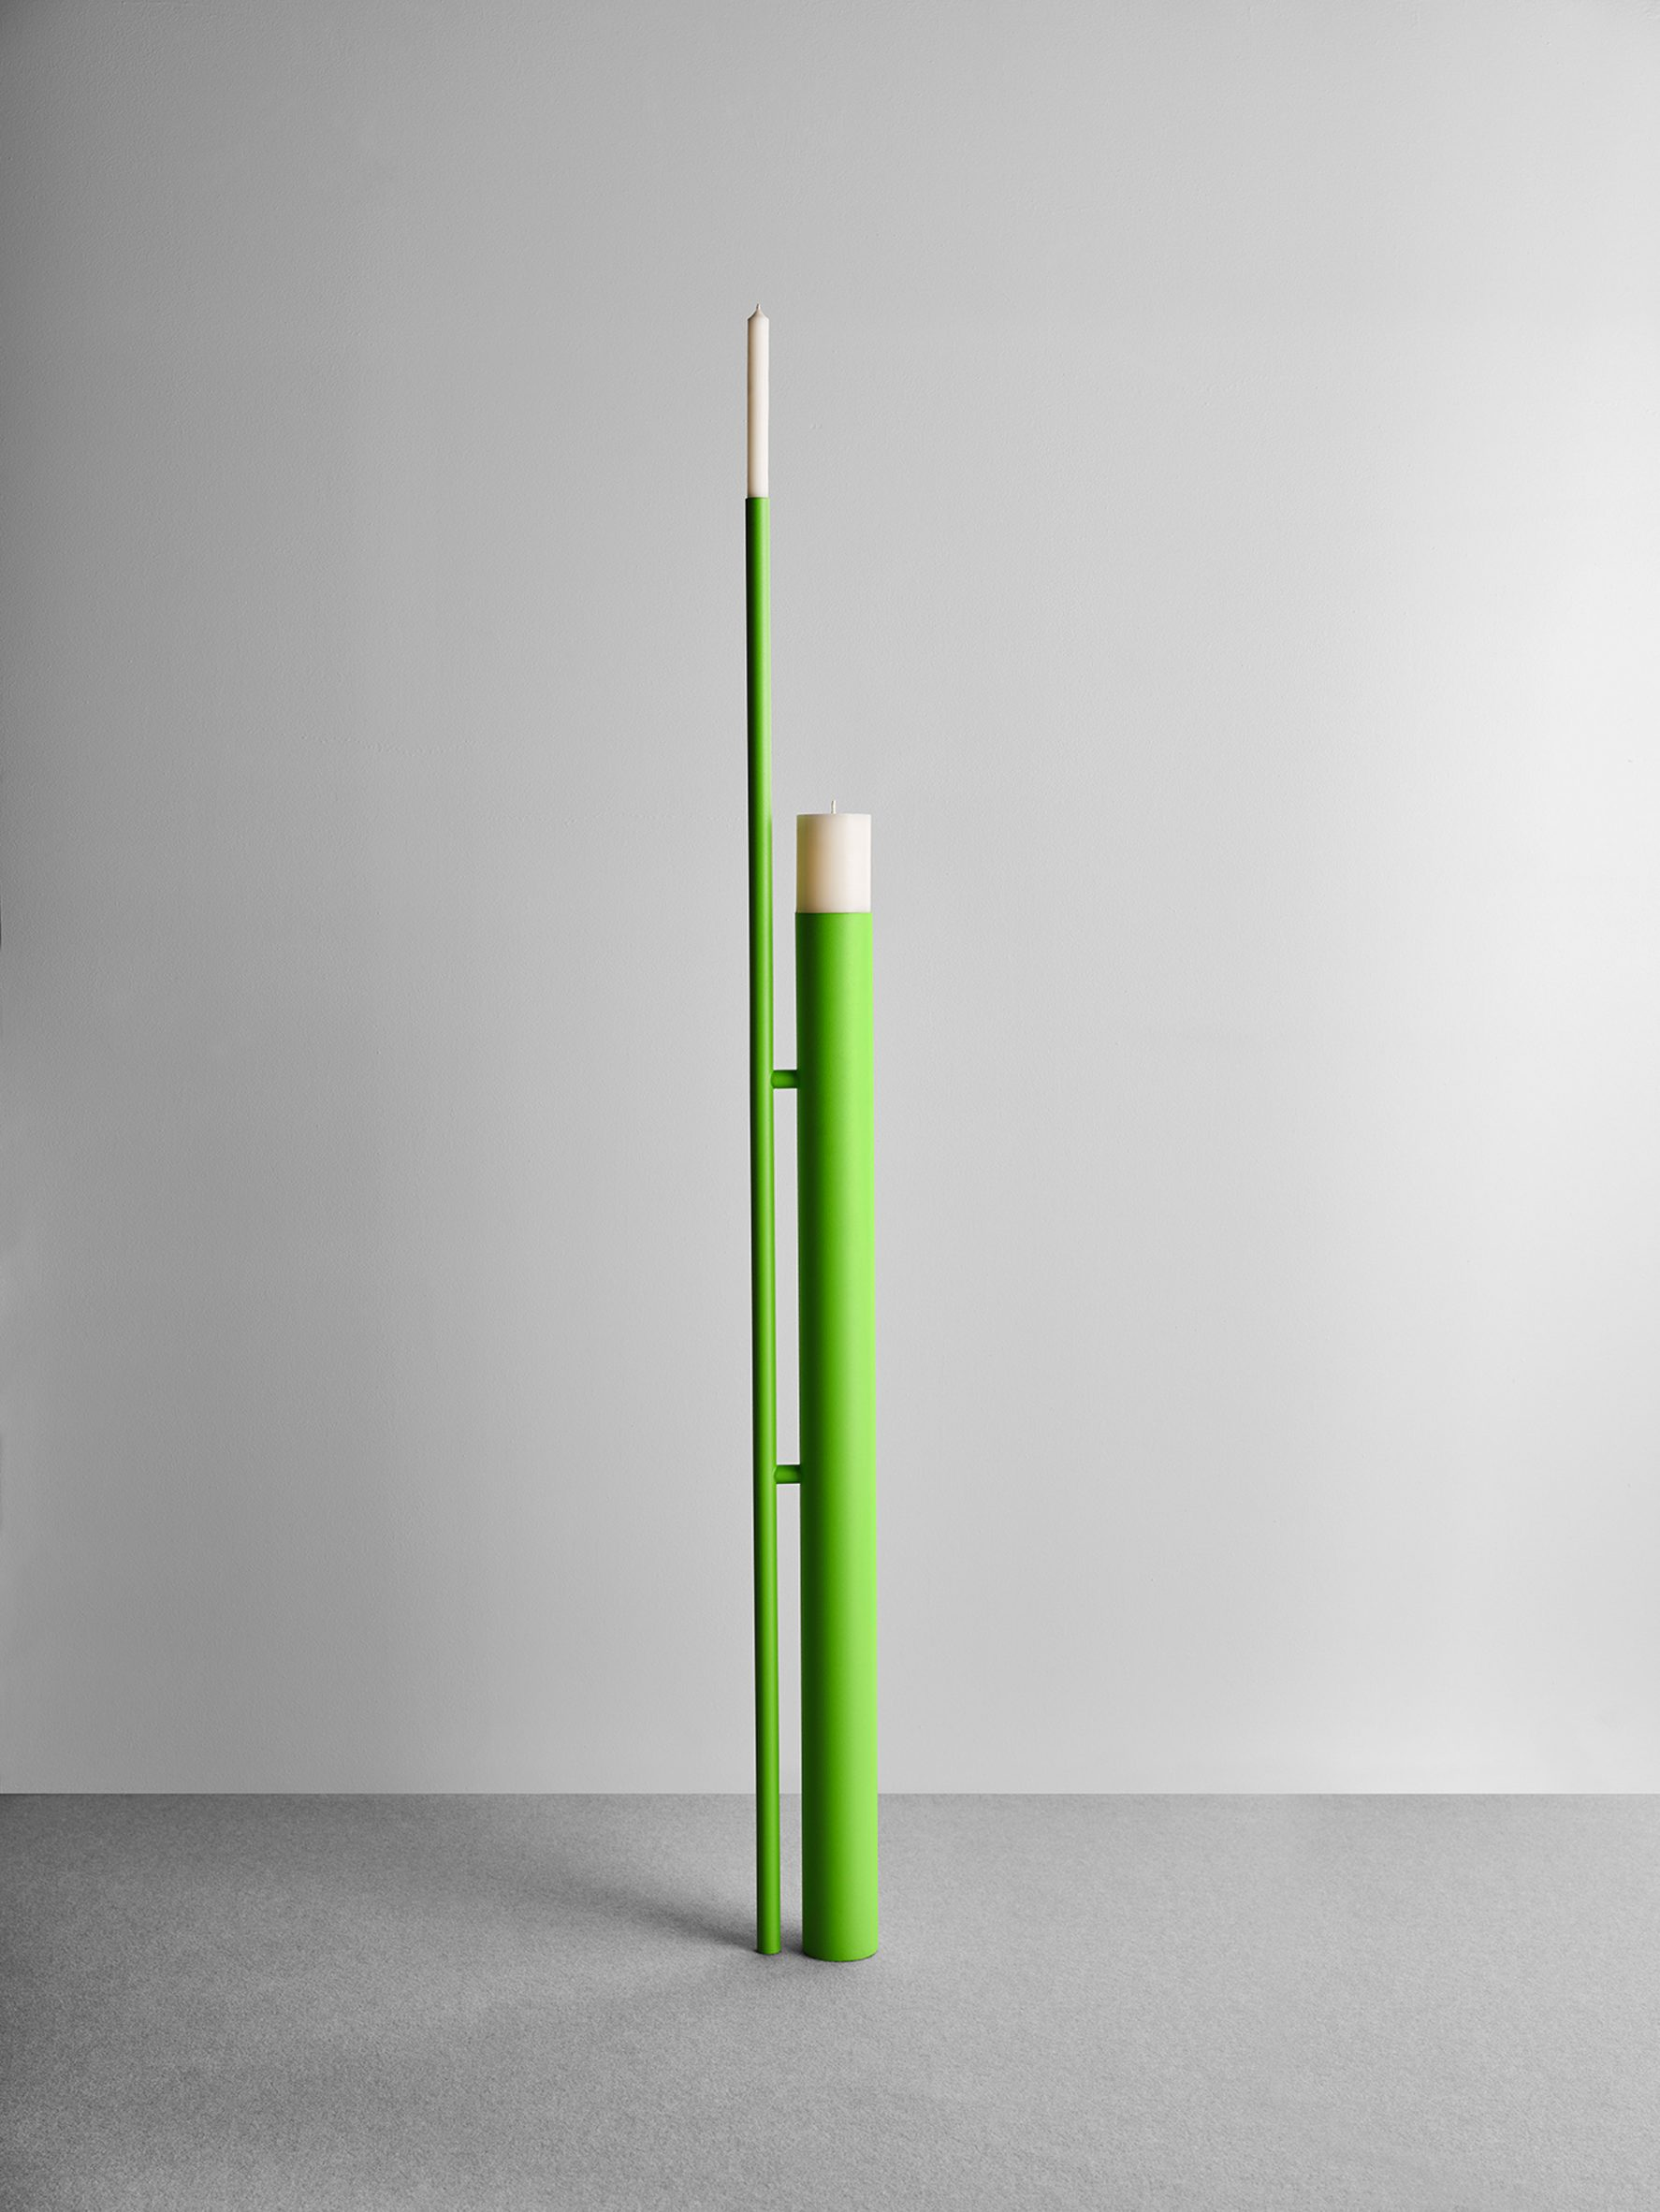 Philippe Malouin design for A Flame for Research